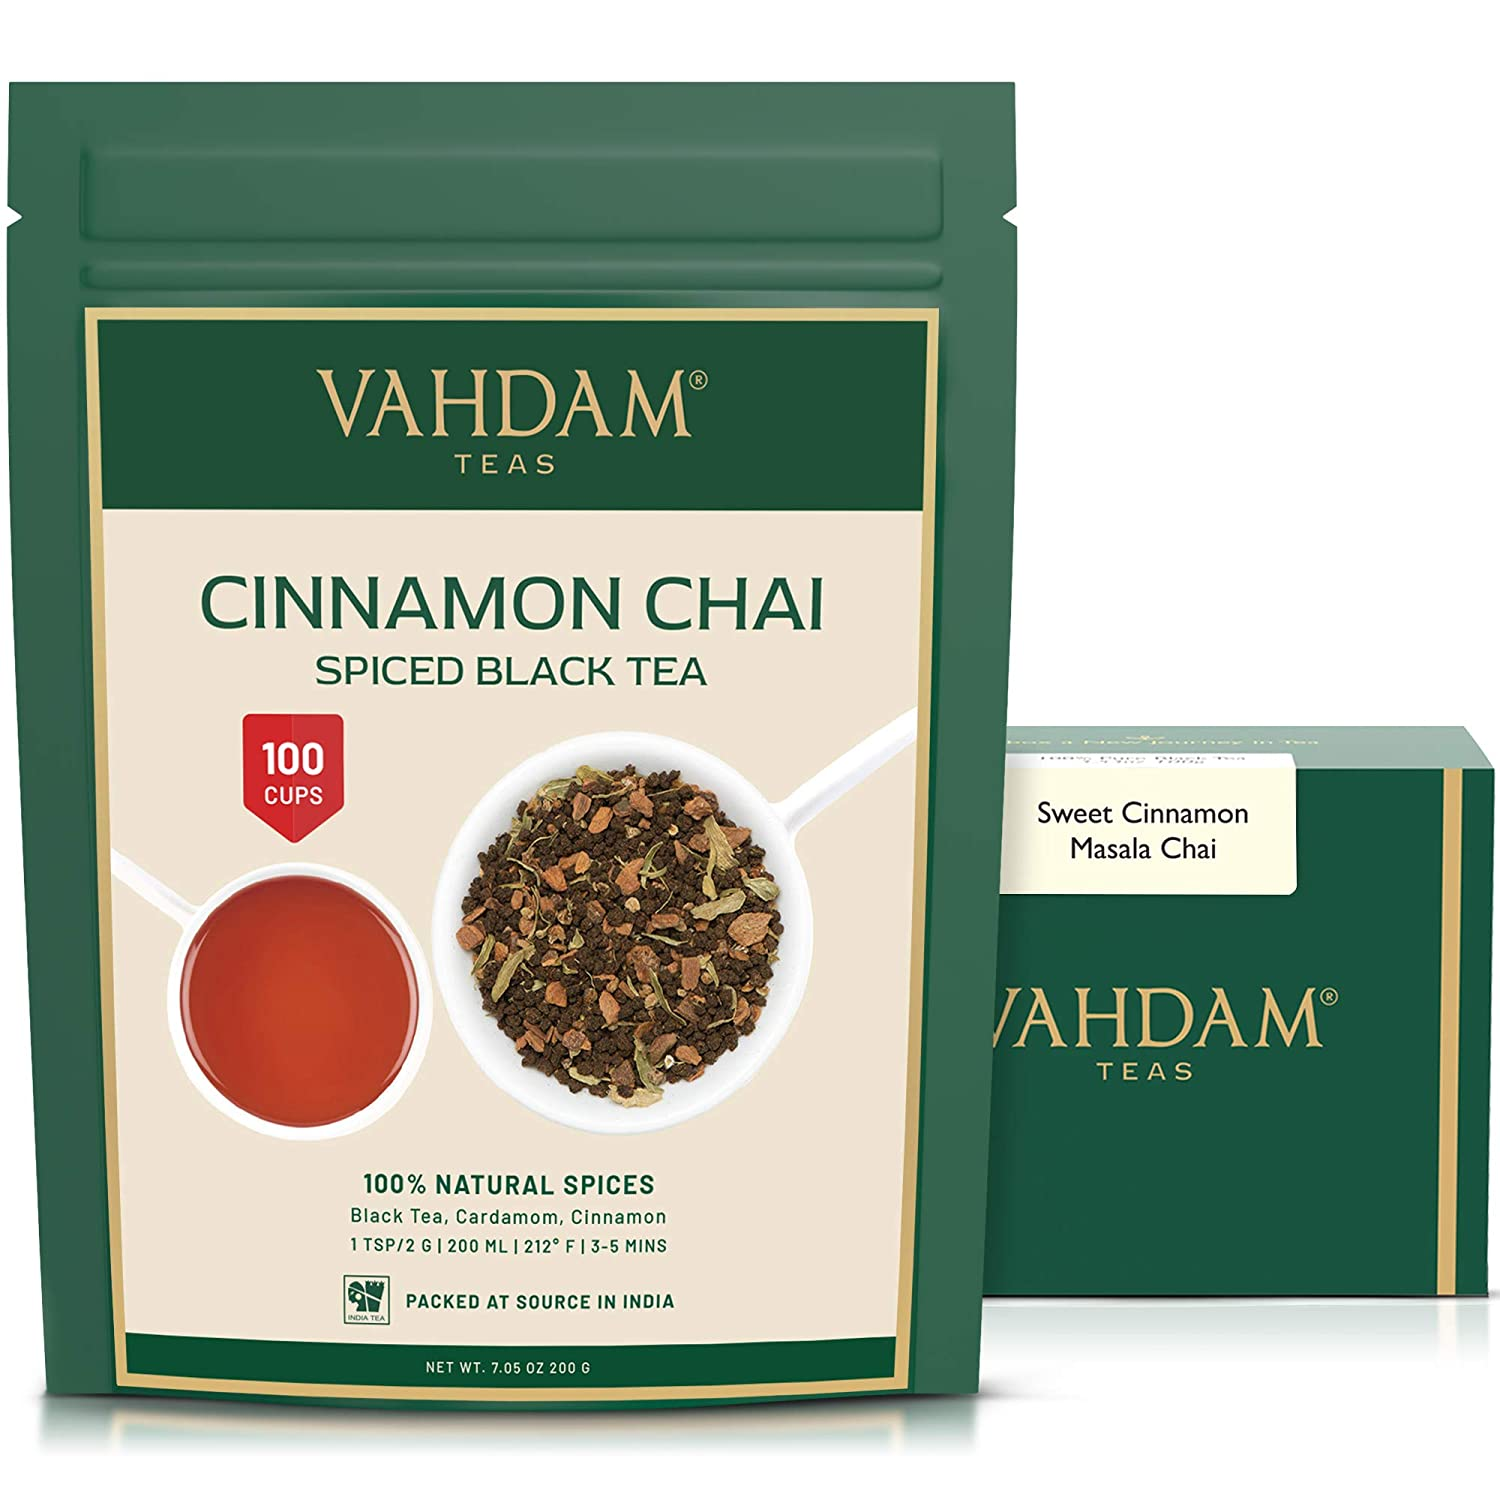 Vahdam tea Cinnamon Masala Chai Tea